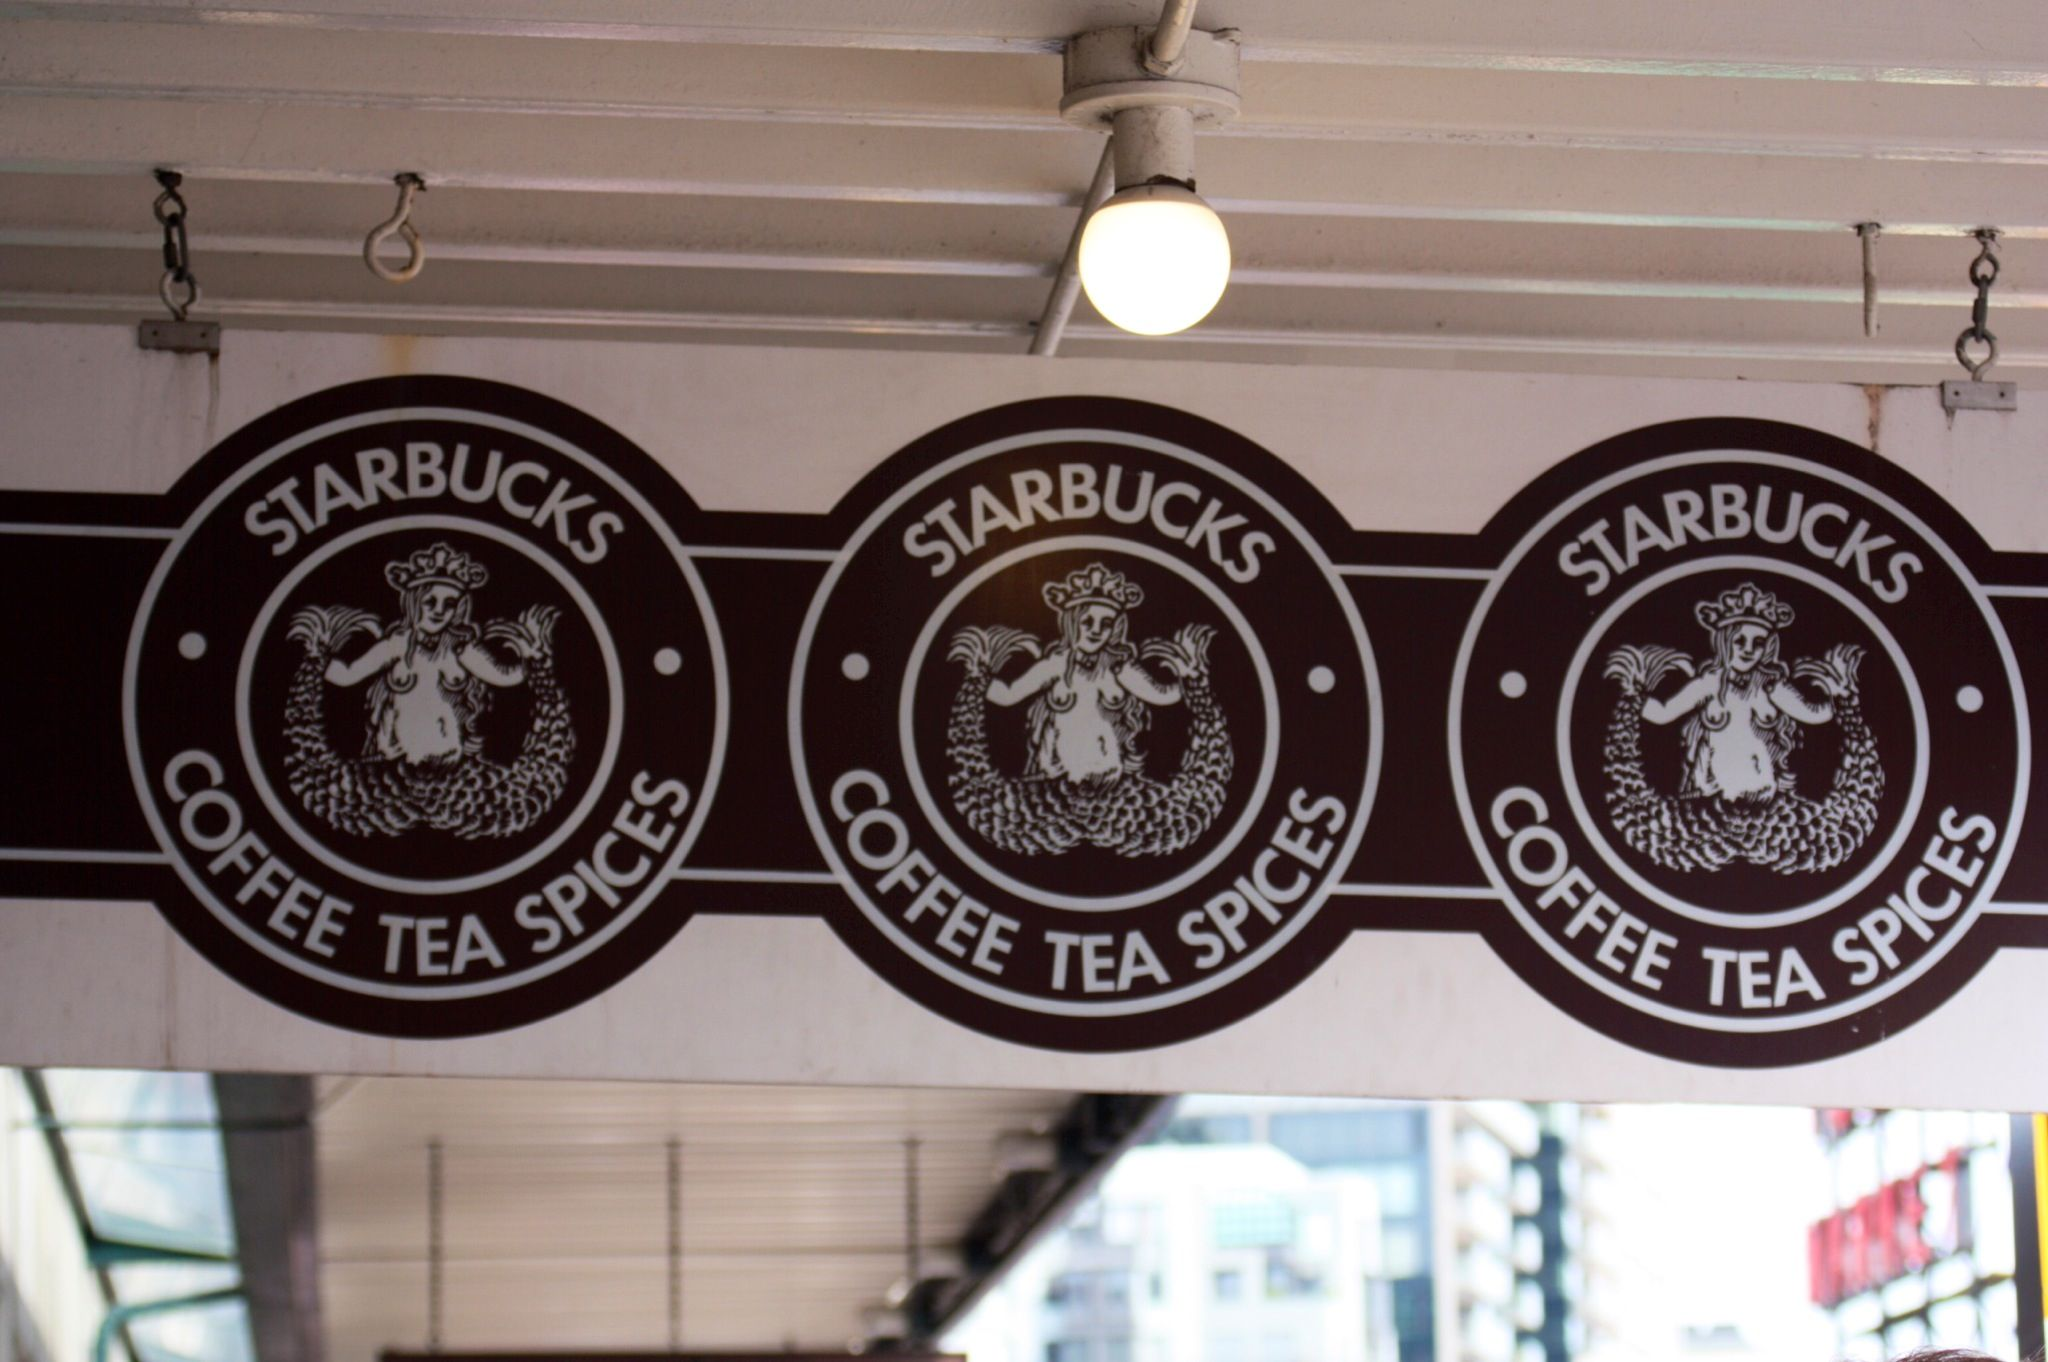 The very first Starbucks. Pike Place Market, Seattle Washington. ☕